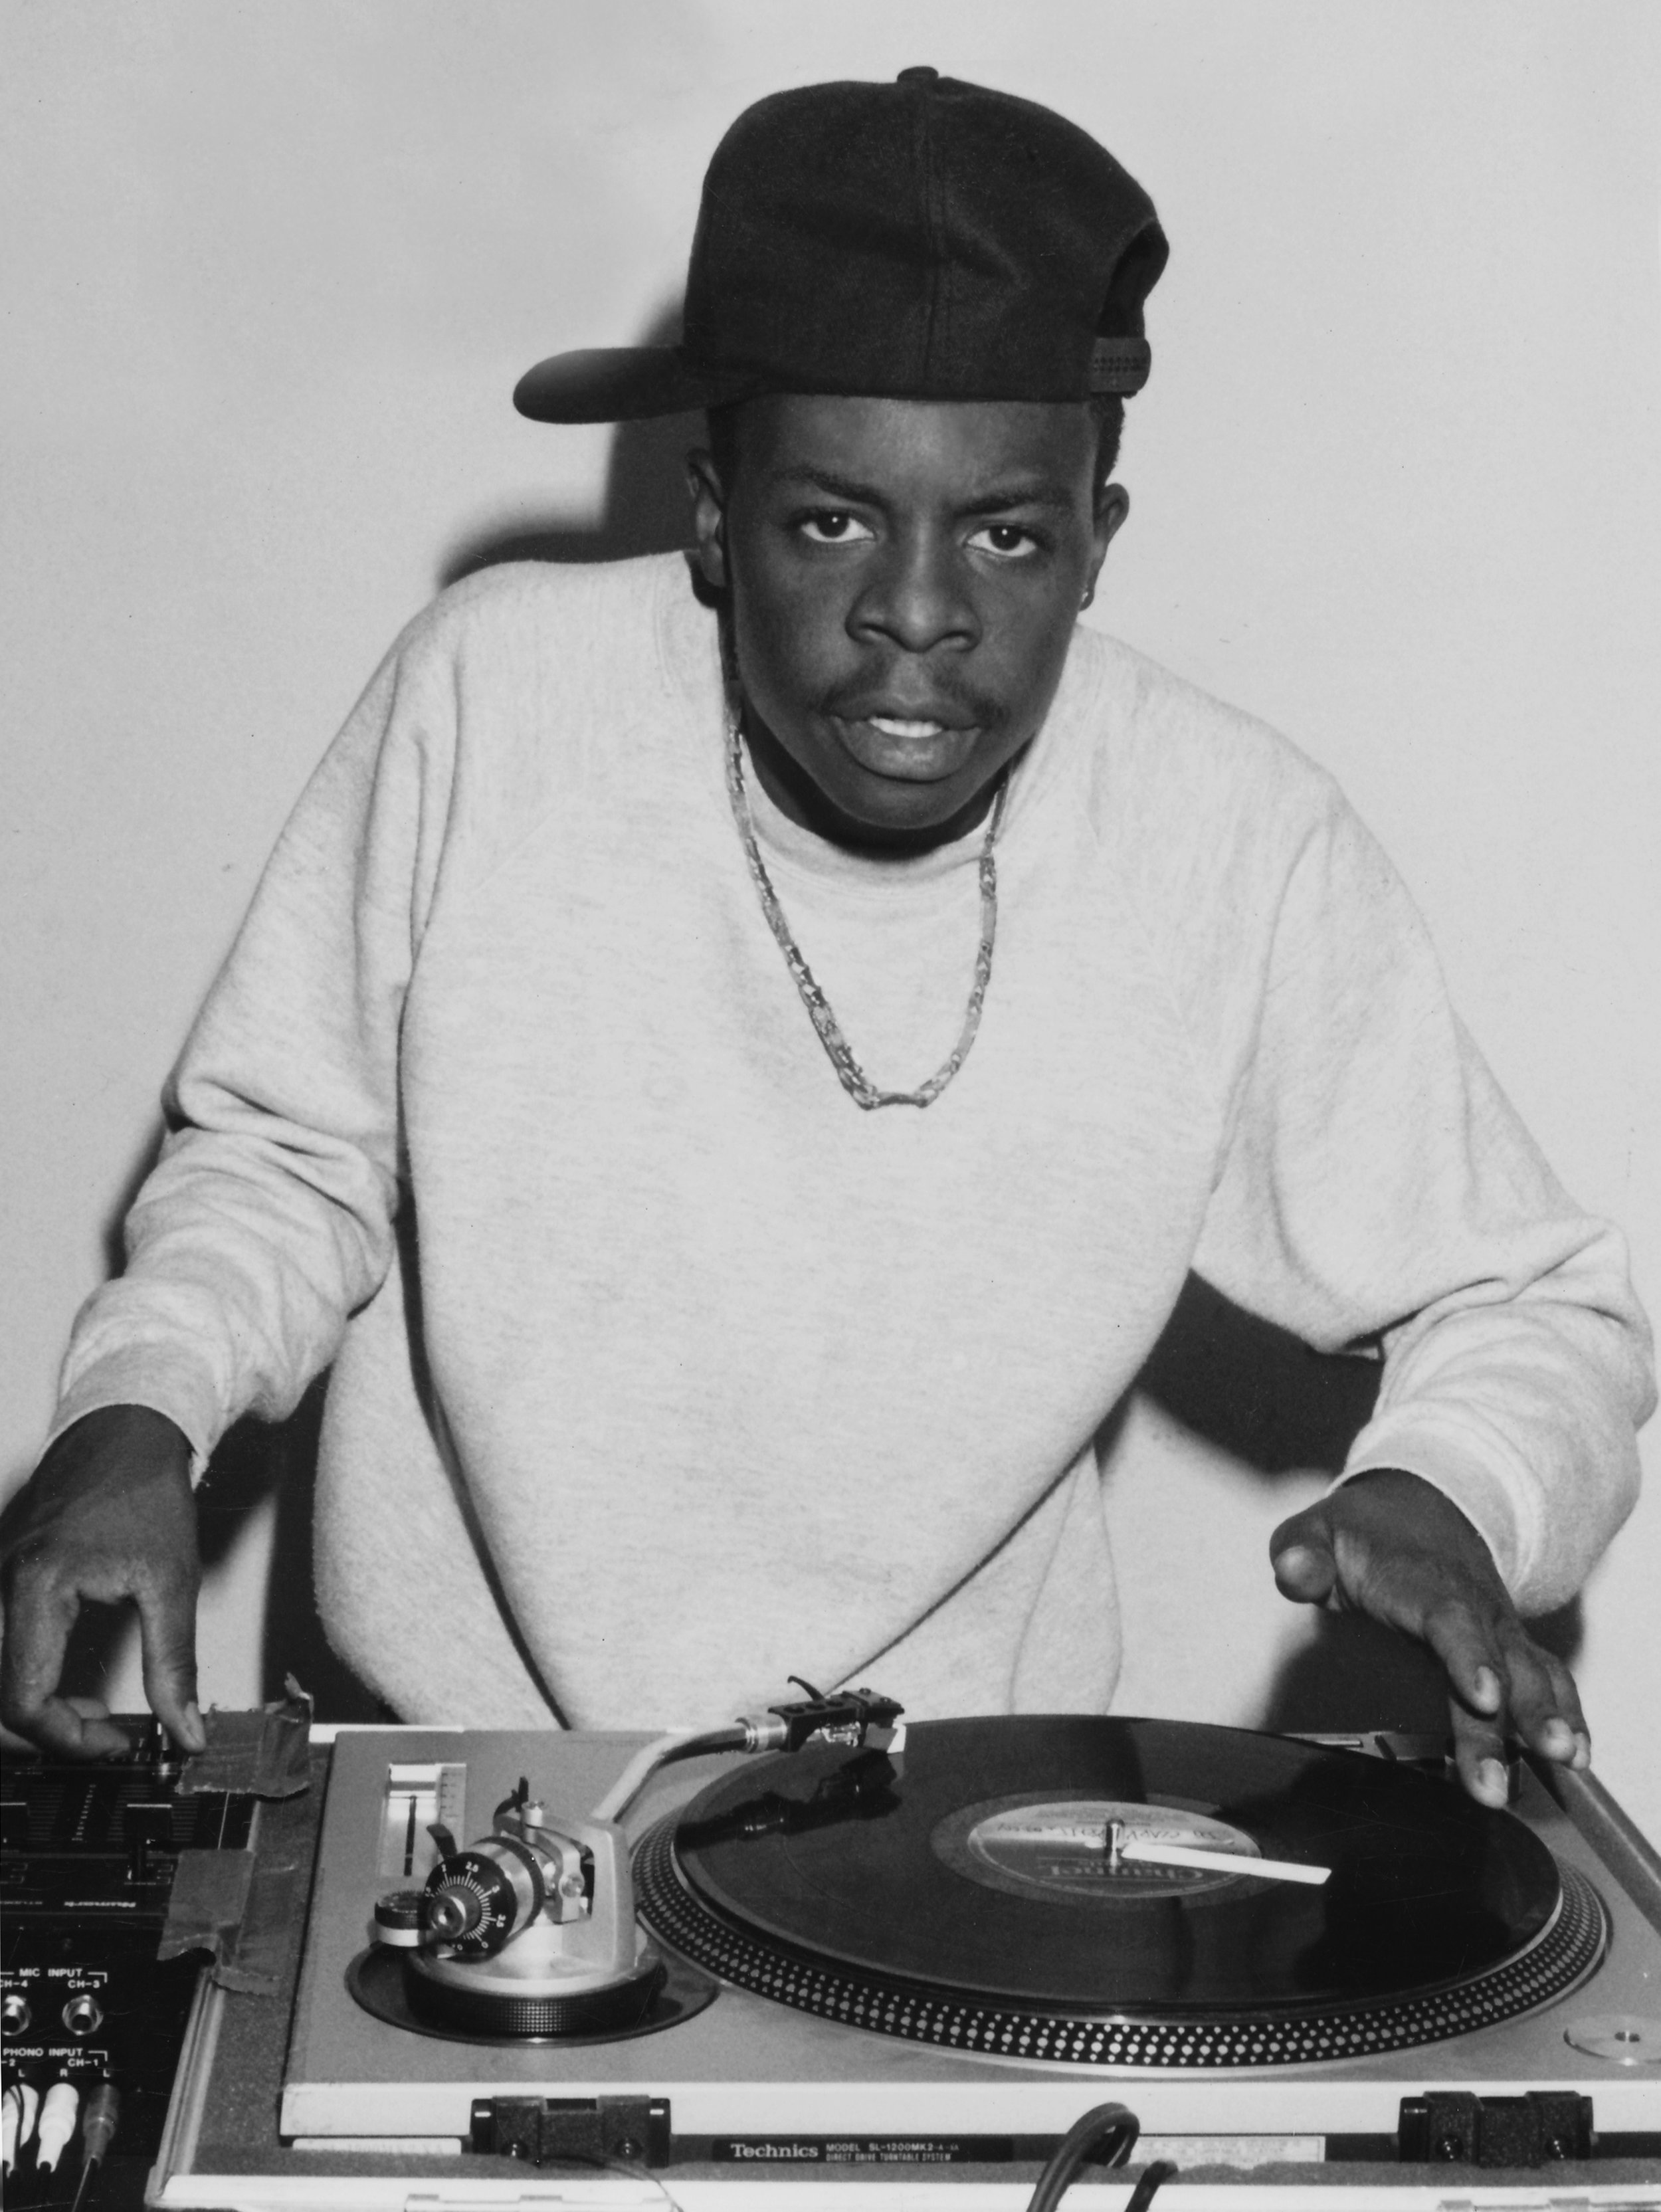 DJ ALADDIN - February 1990, he was literally performing in his apartment in Hollywood while I was shooting.